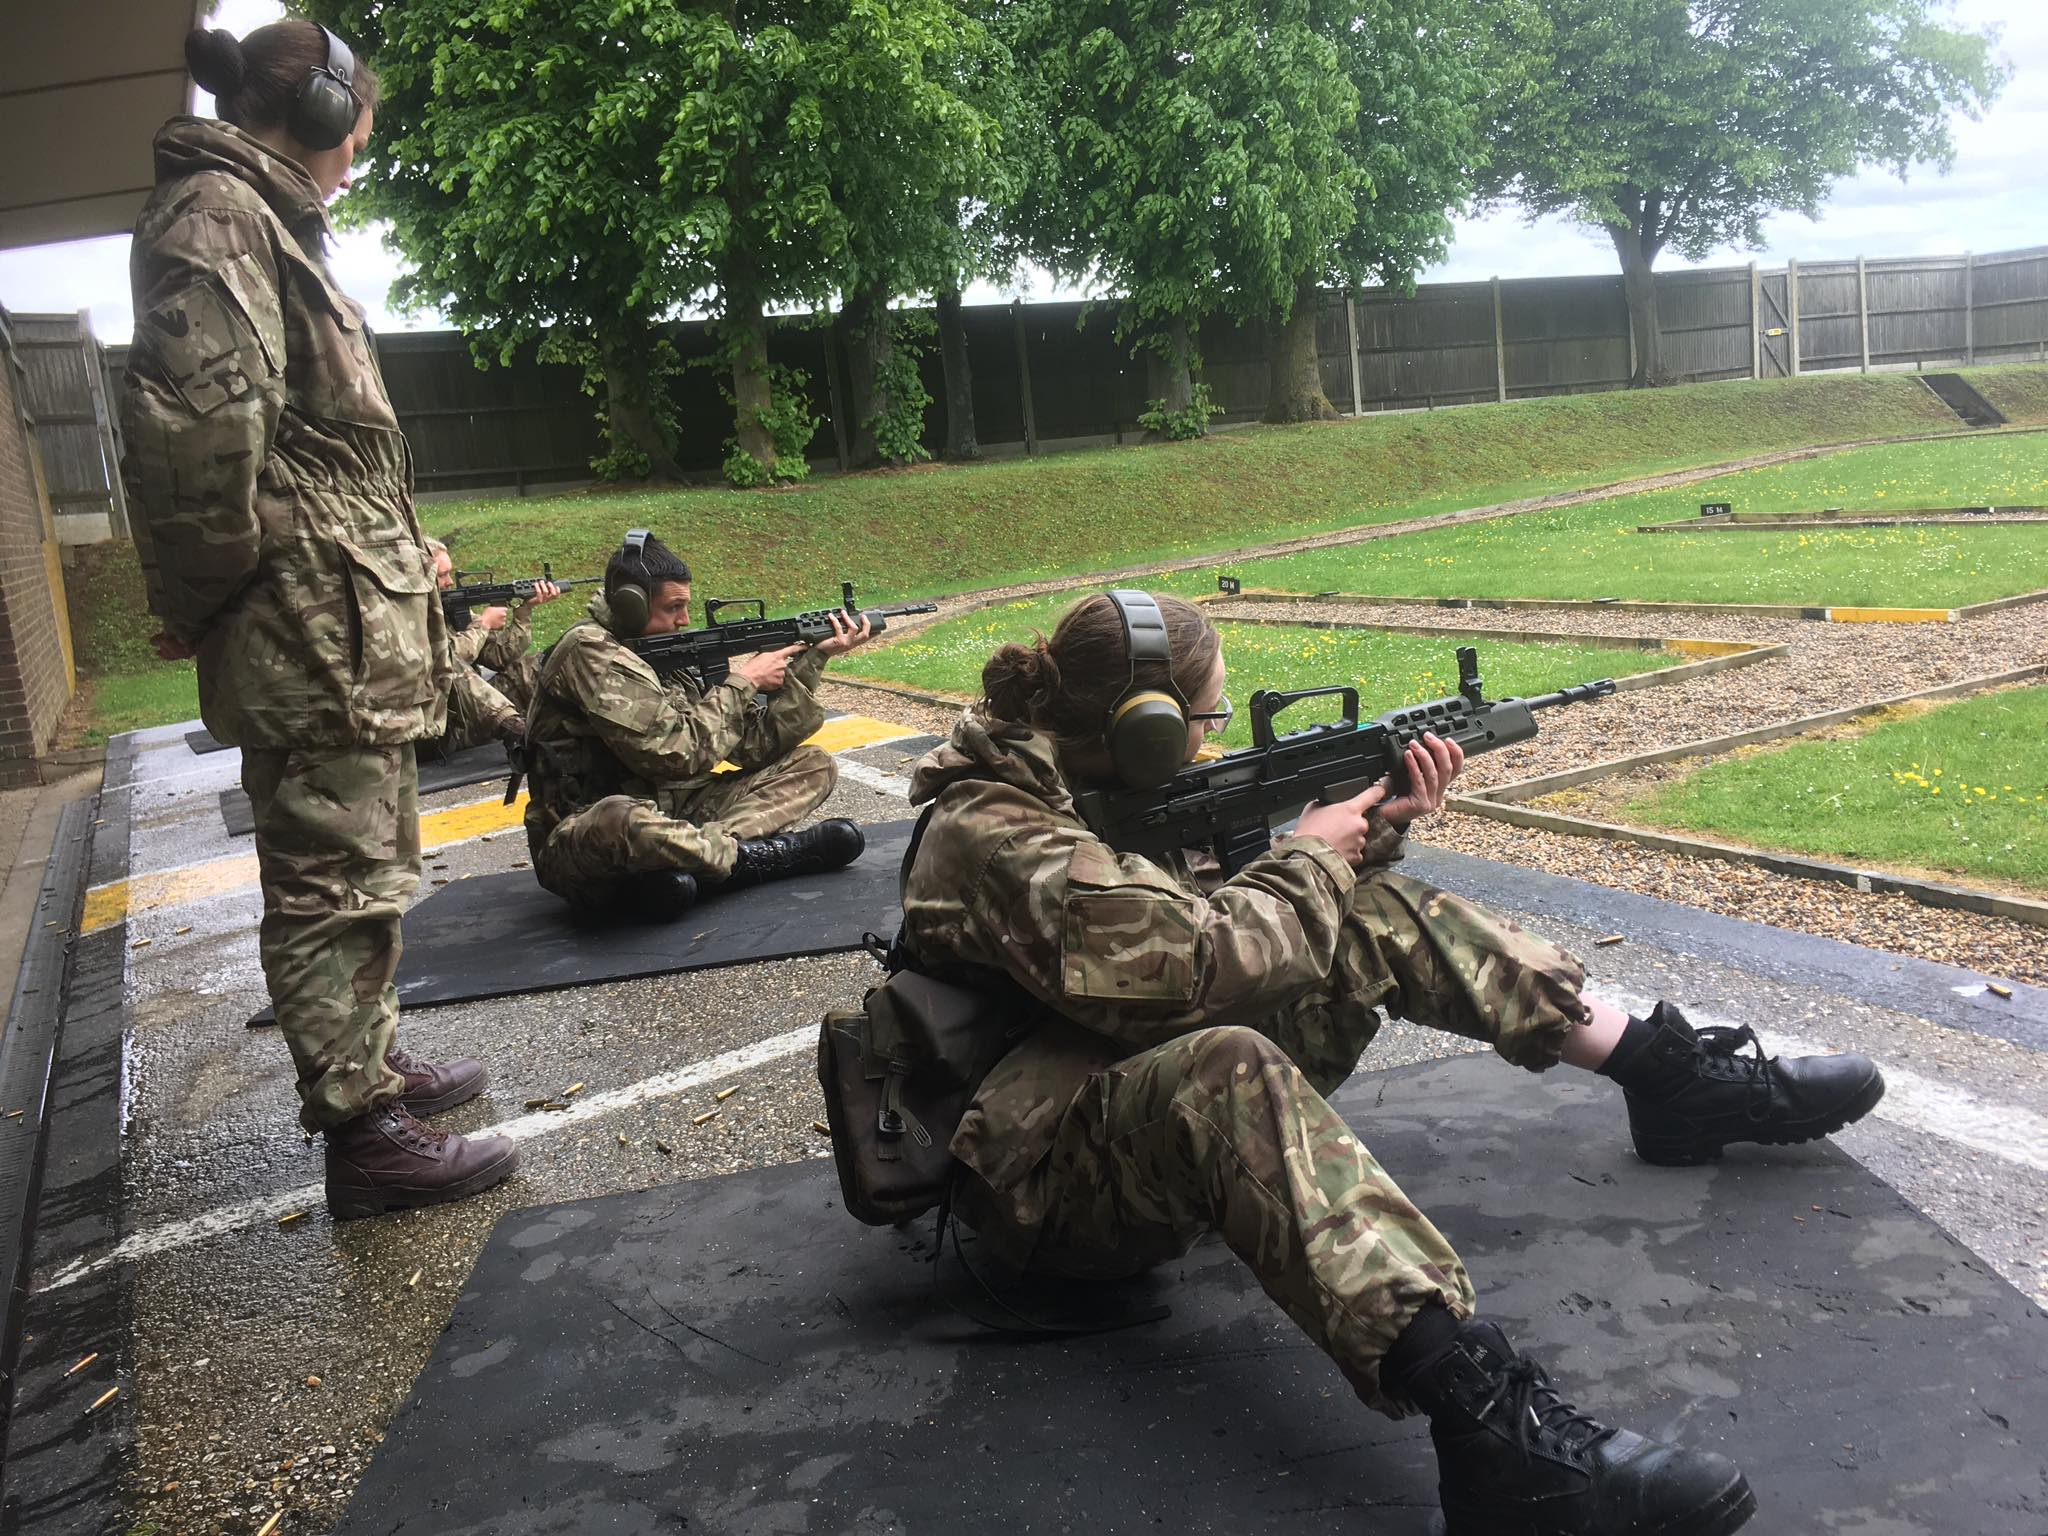 Qualified RCO - short range course